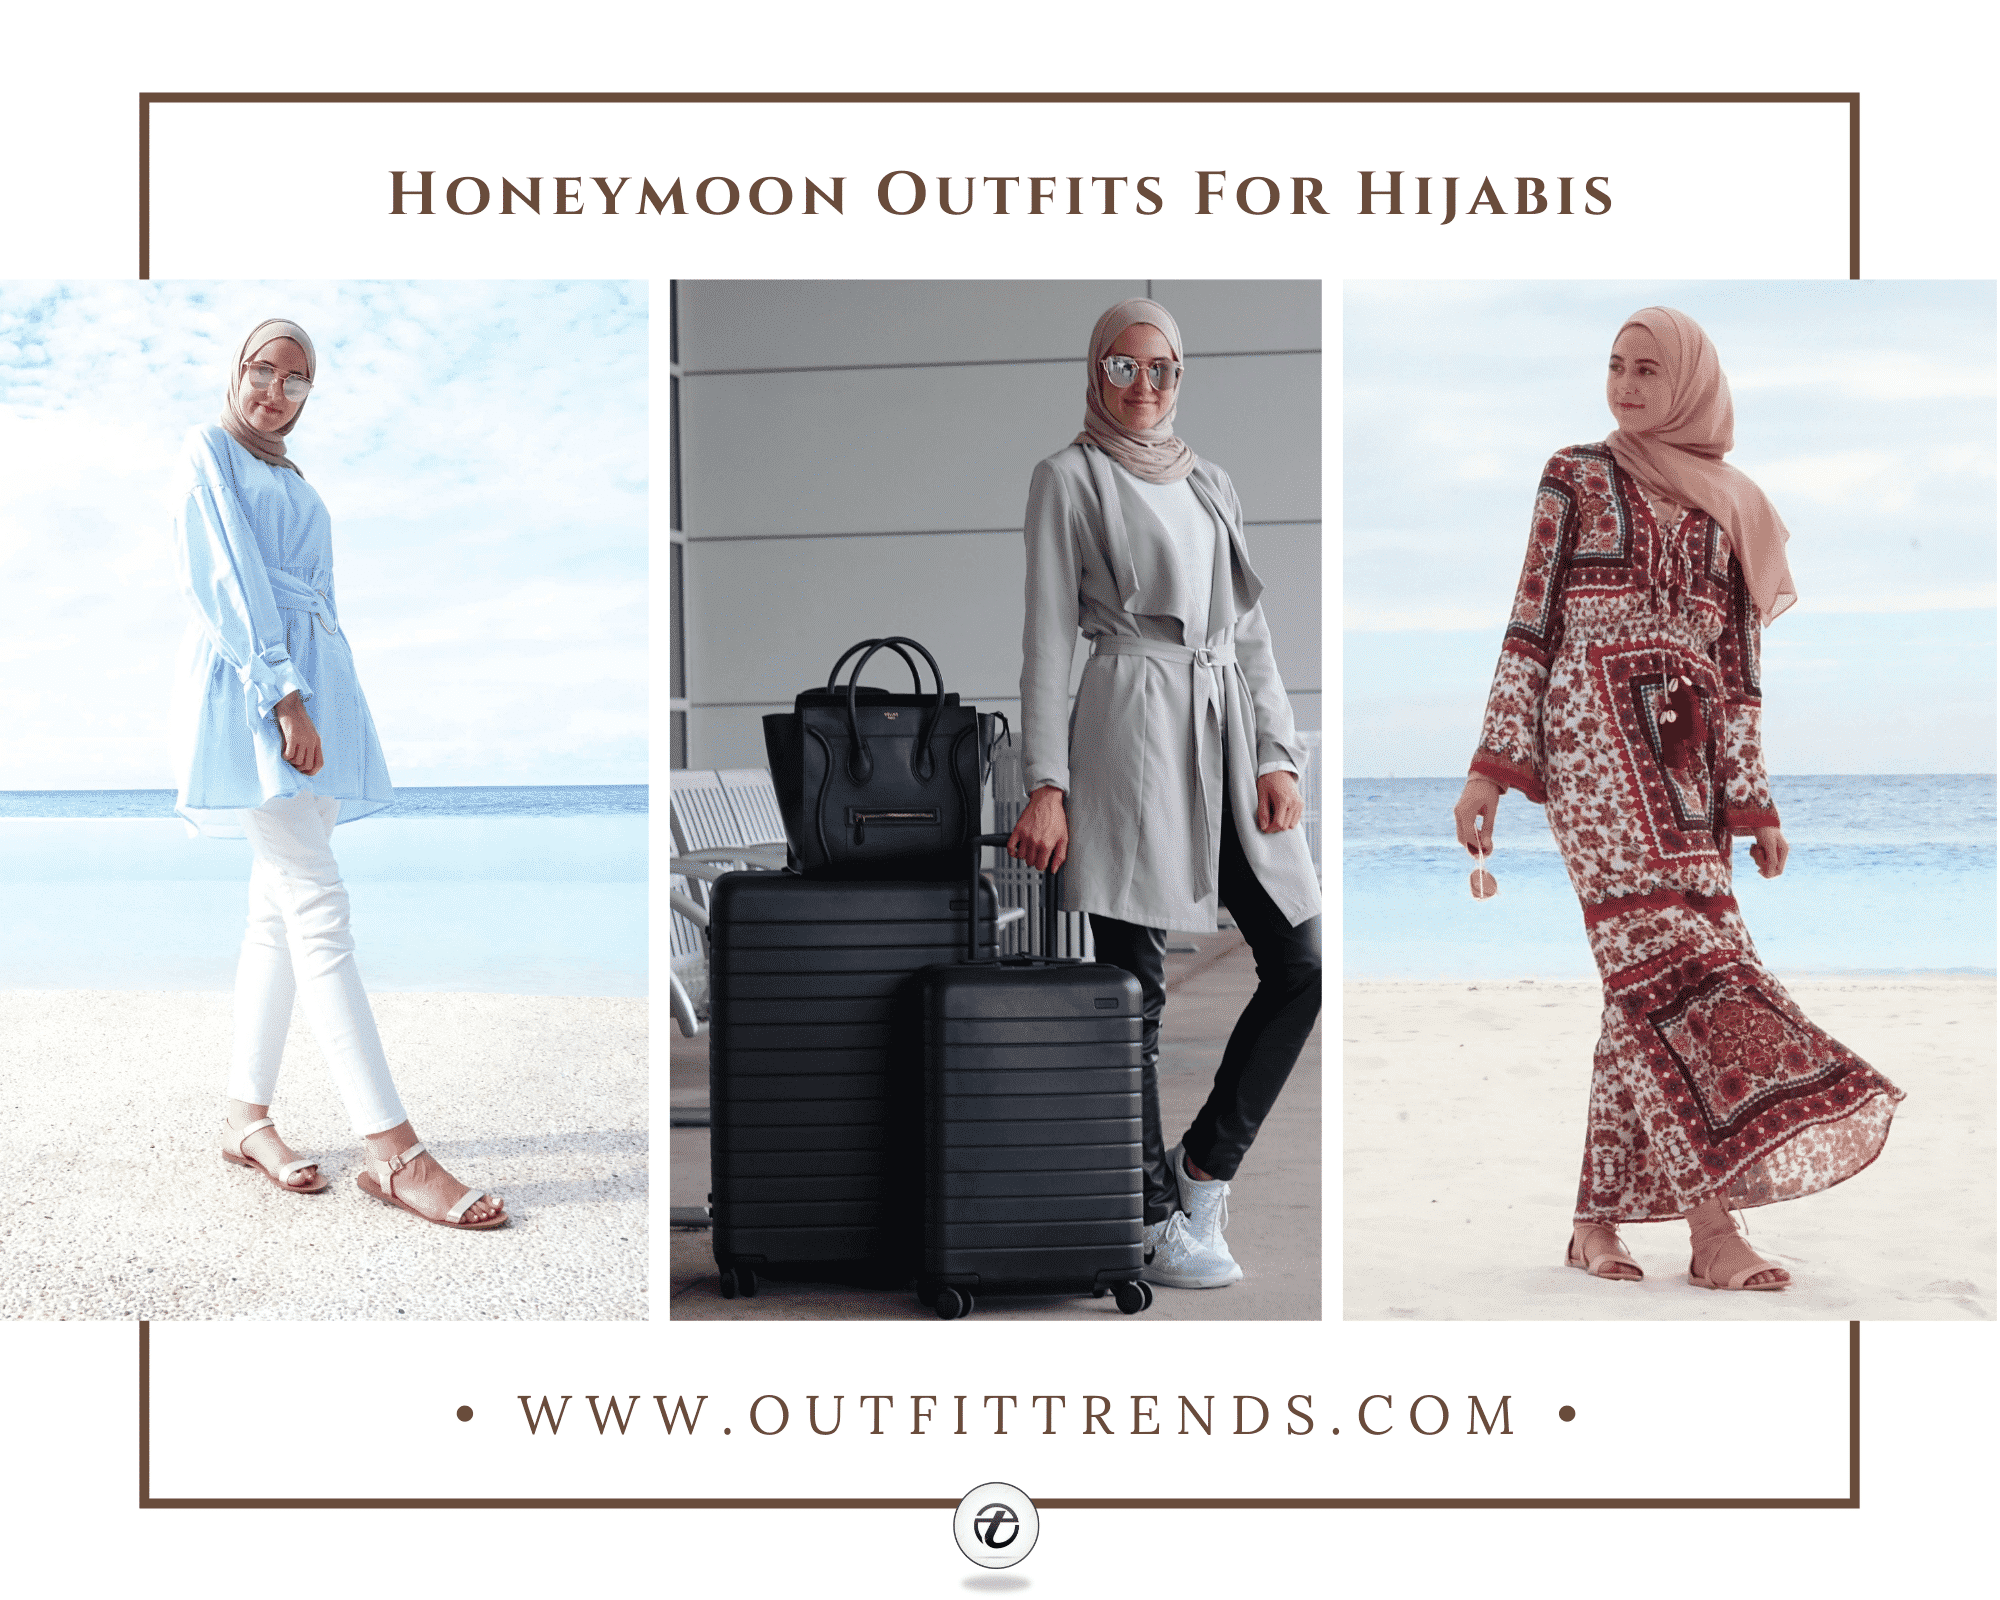 19 Modest But Stylish Hijab Outfits for Honeymoon